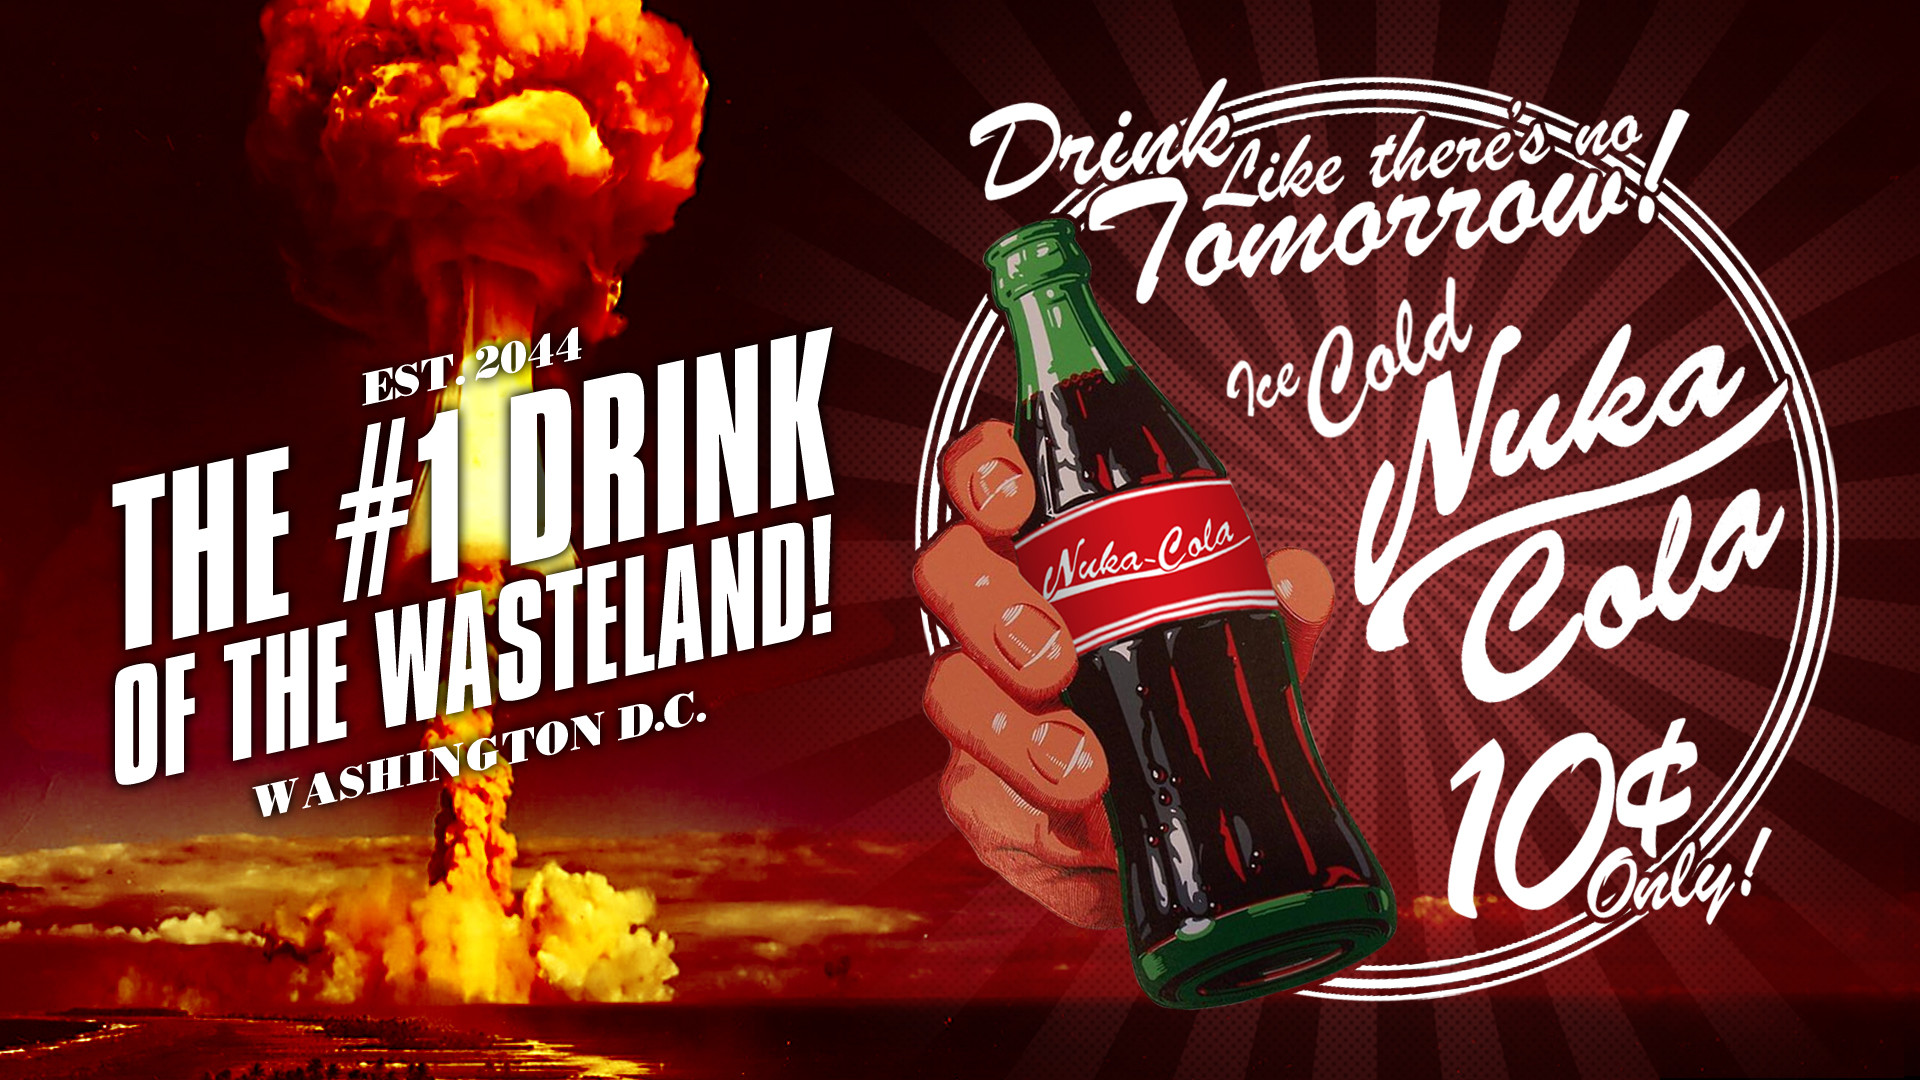 … Nuka Cola – The #1 Drink of the Wasteland! by Potansky